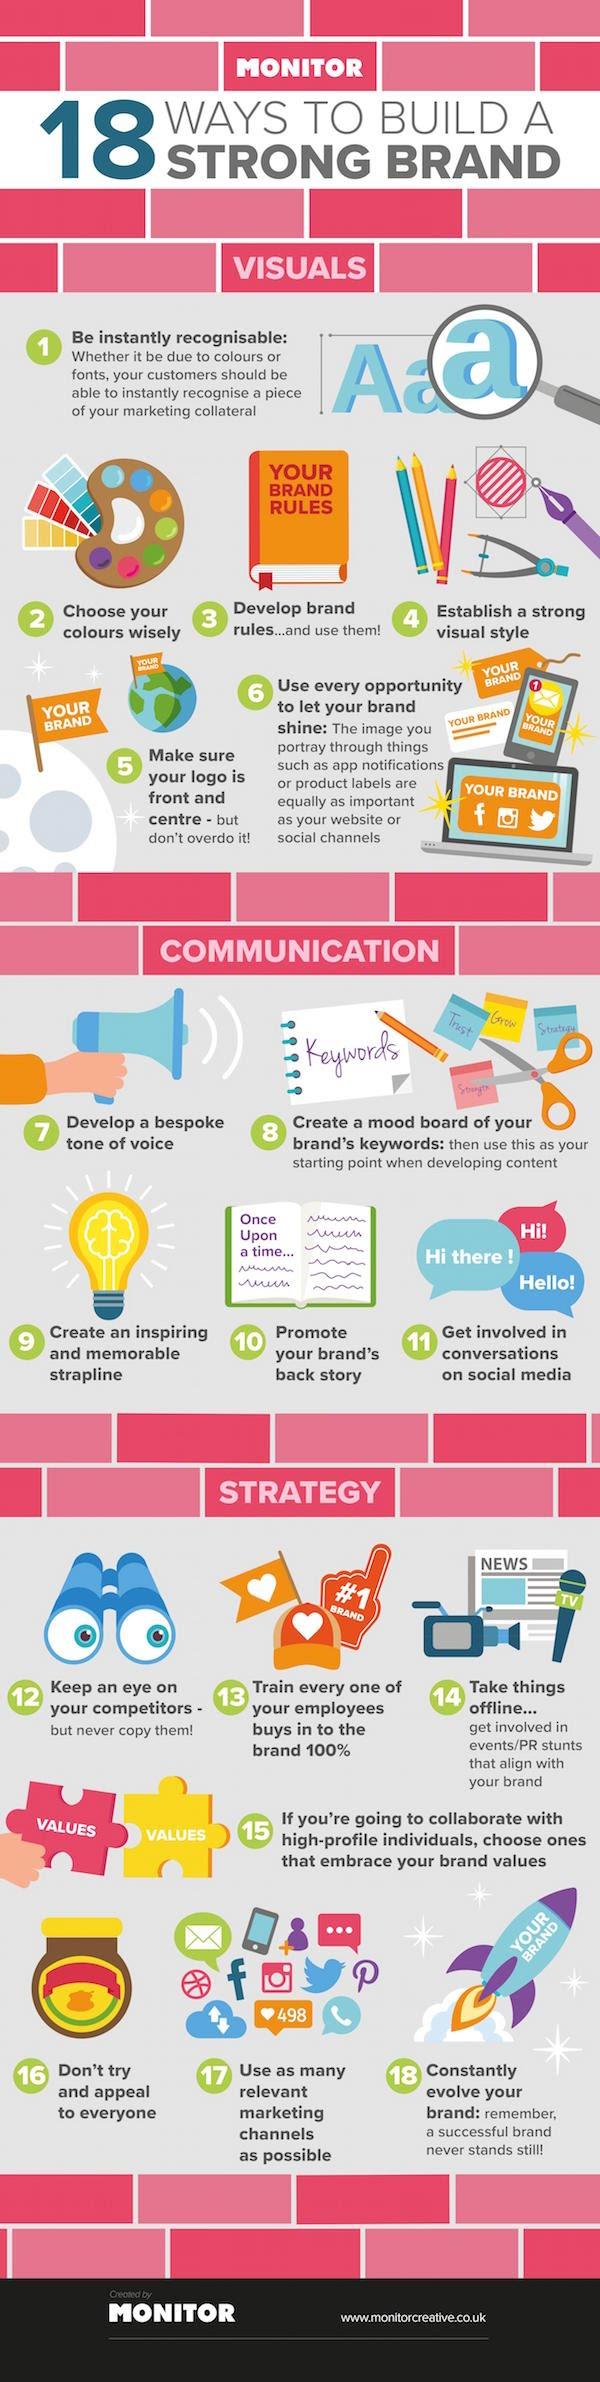 18 Ways to Build a Strong Brand [Infographic] | Social Media Today